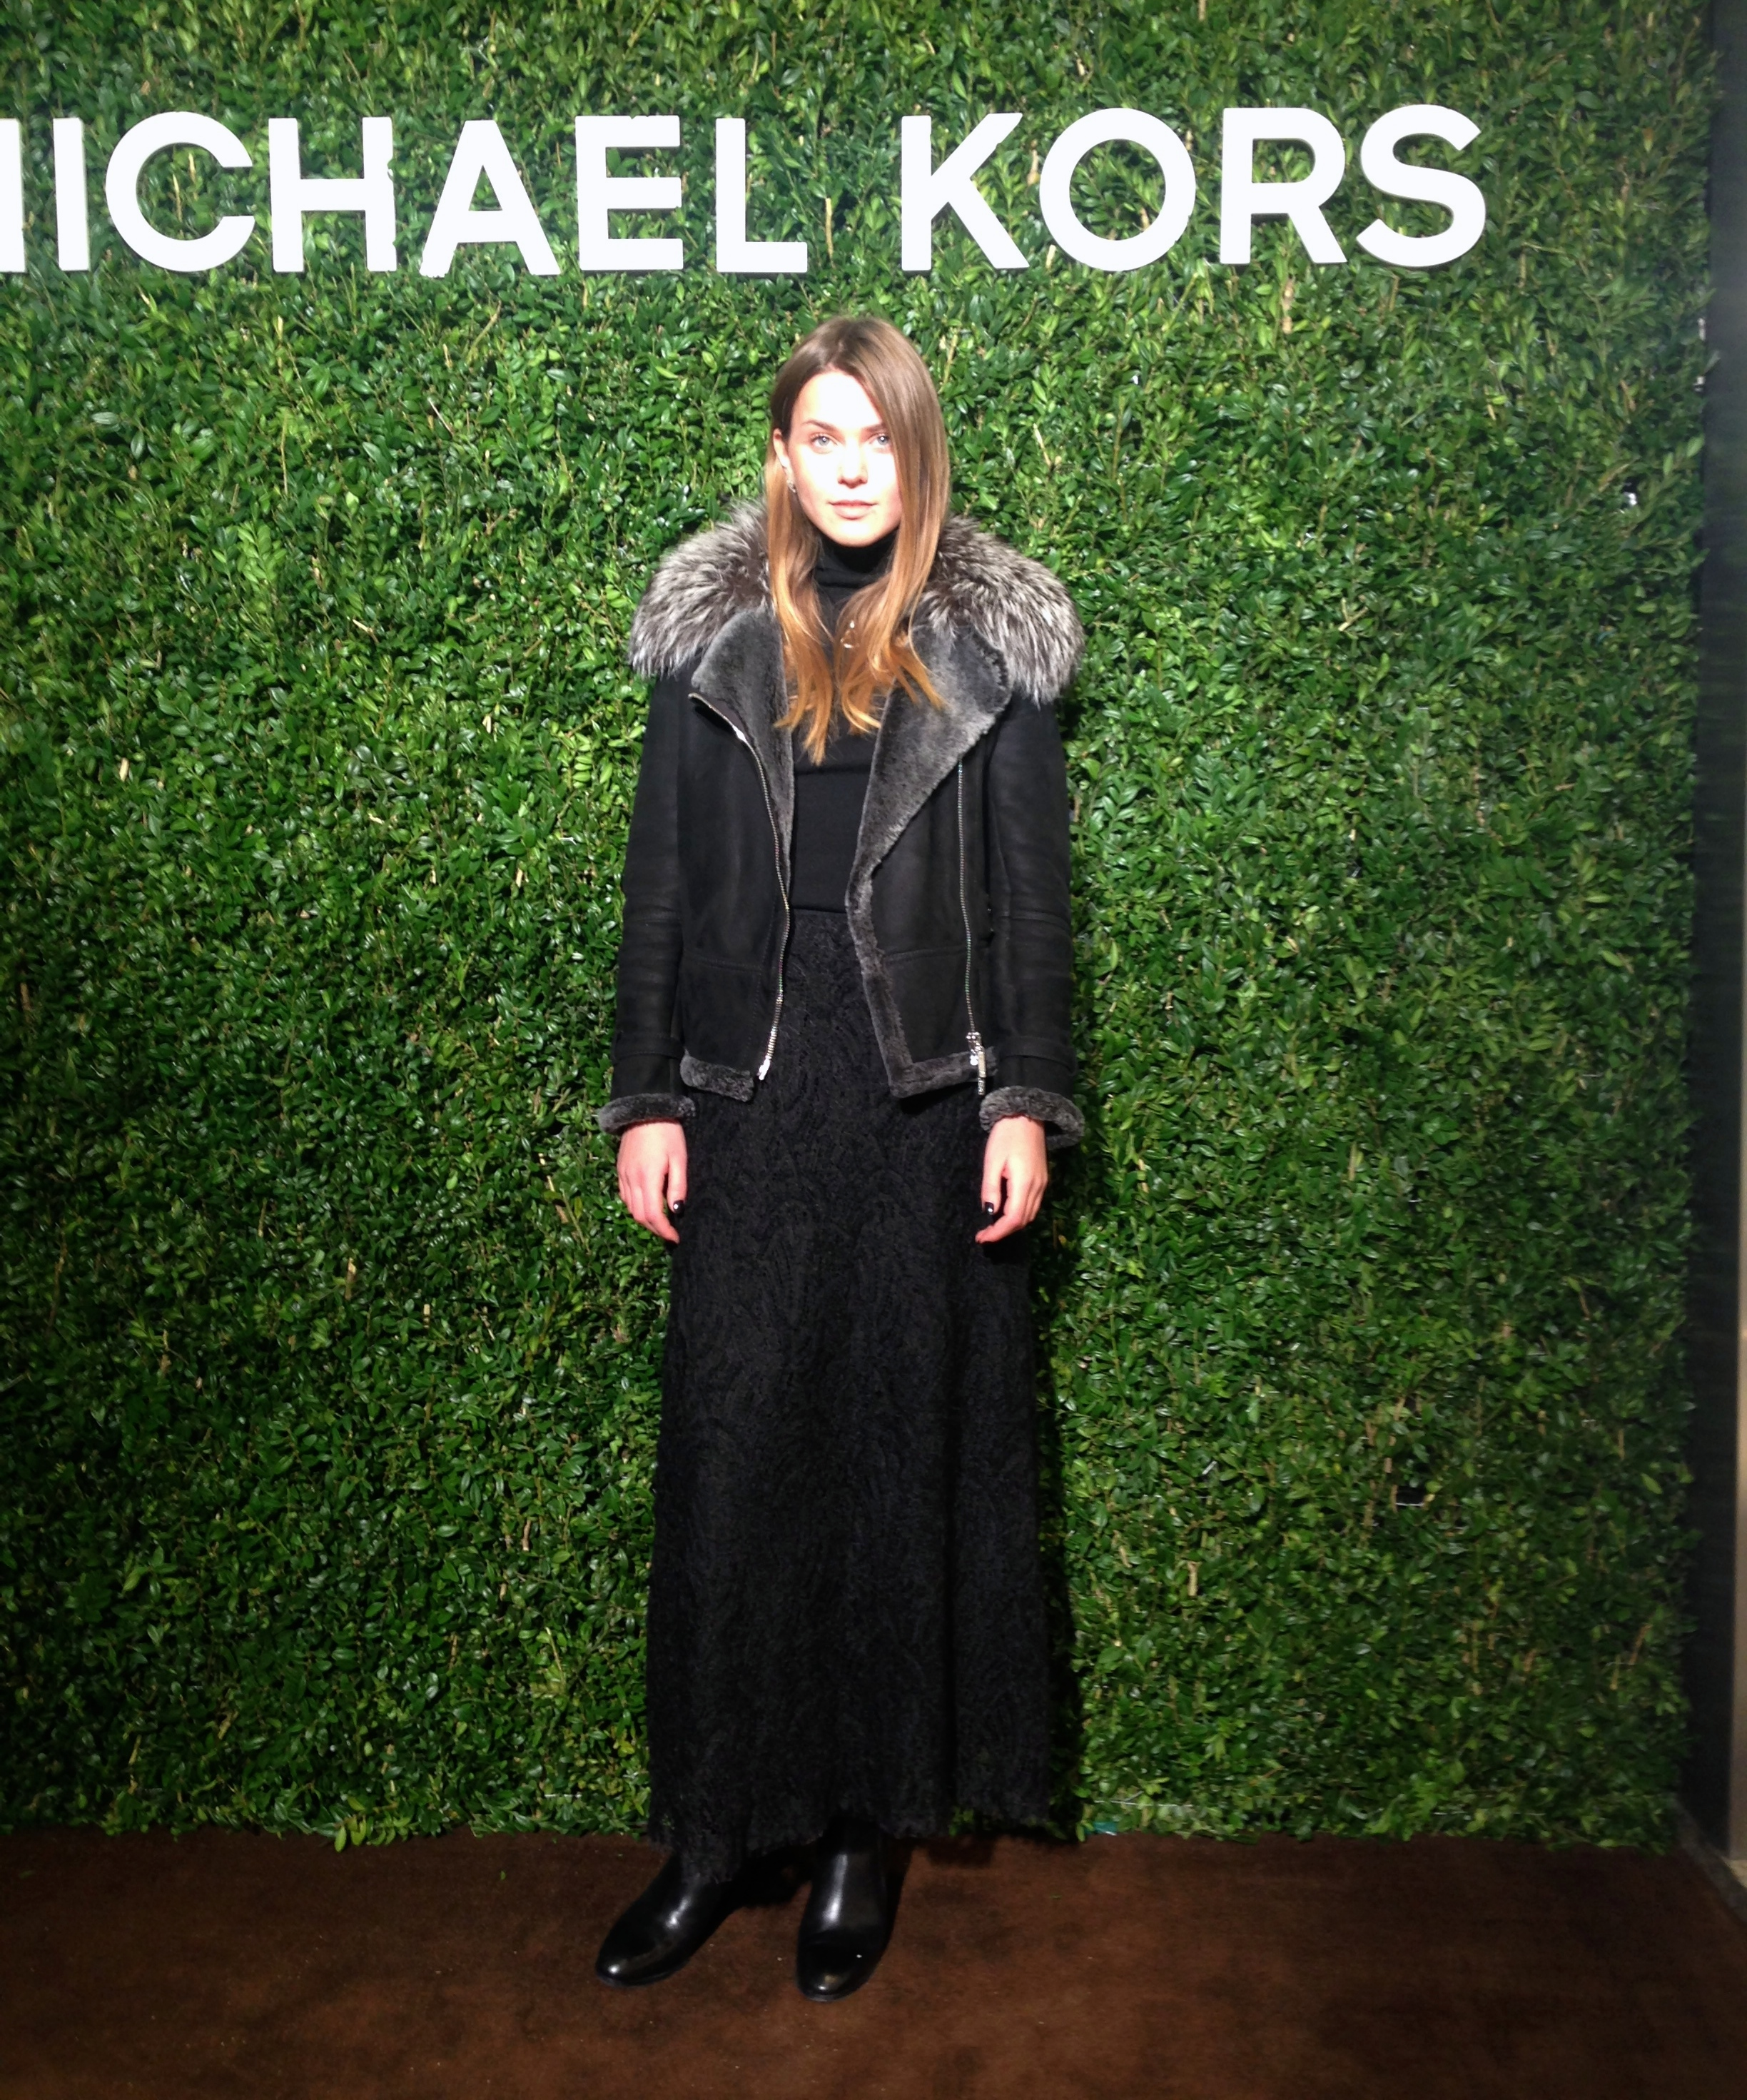 michael kors event milano